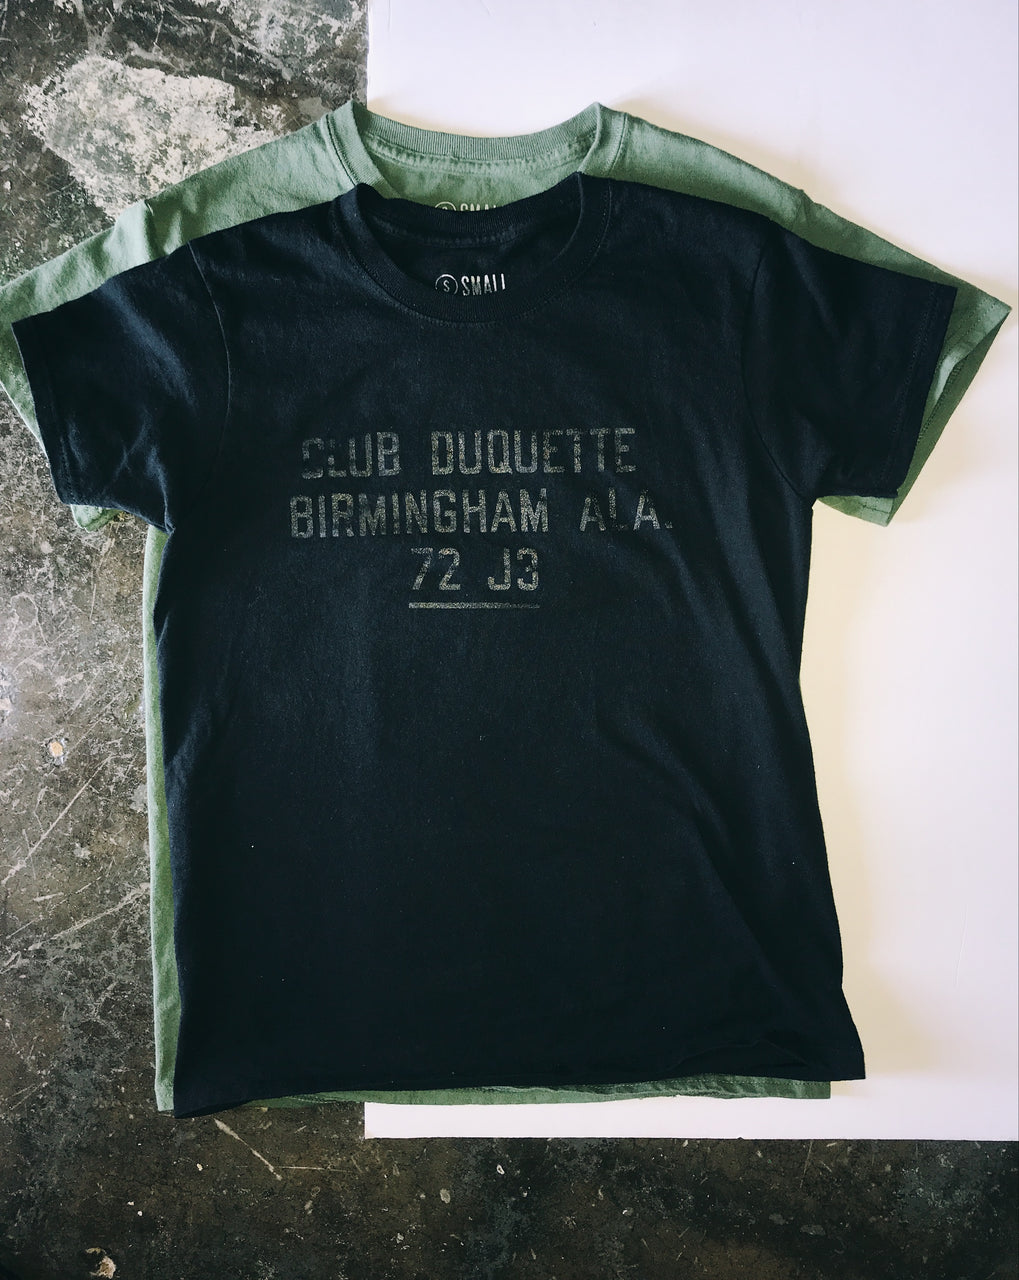 Women's cut Club Duquette Souvenir Tee